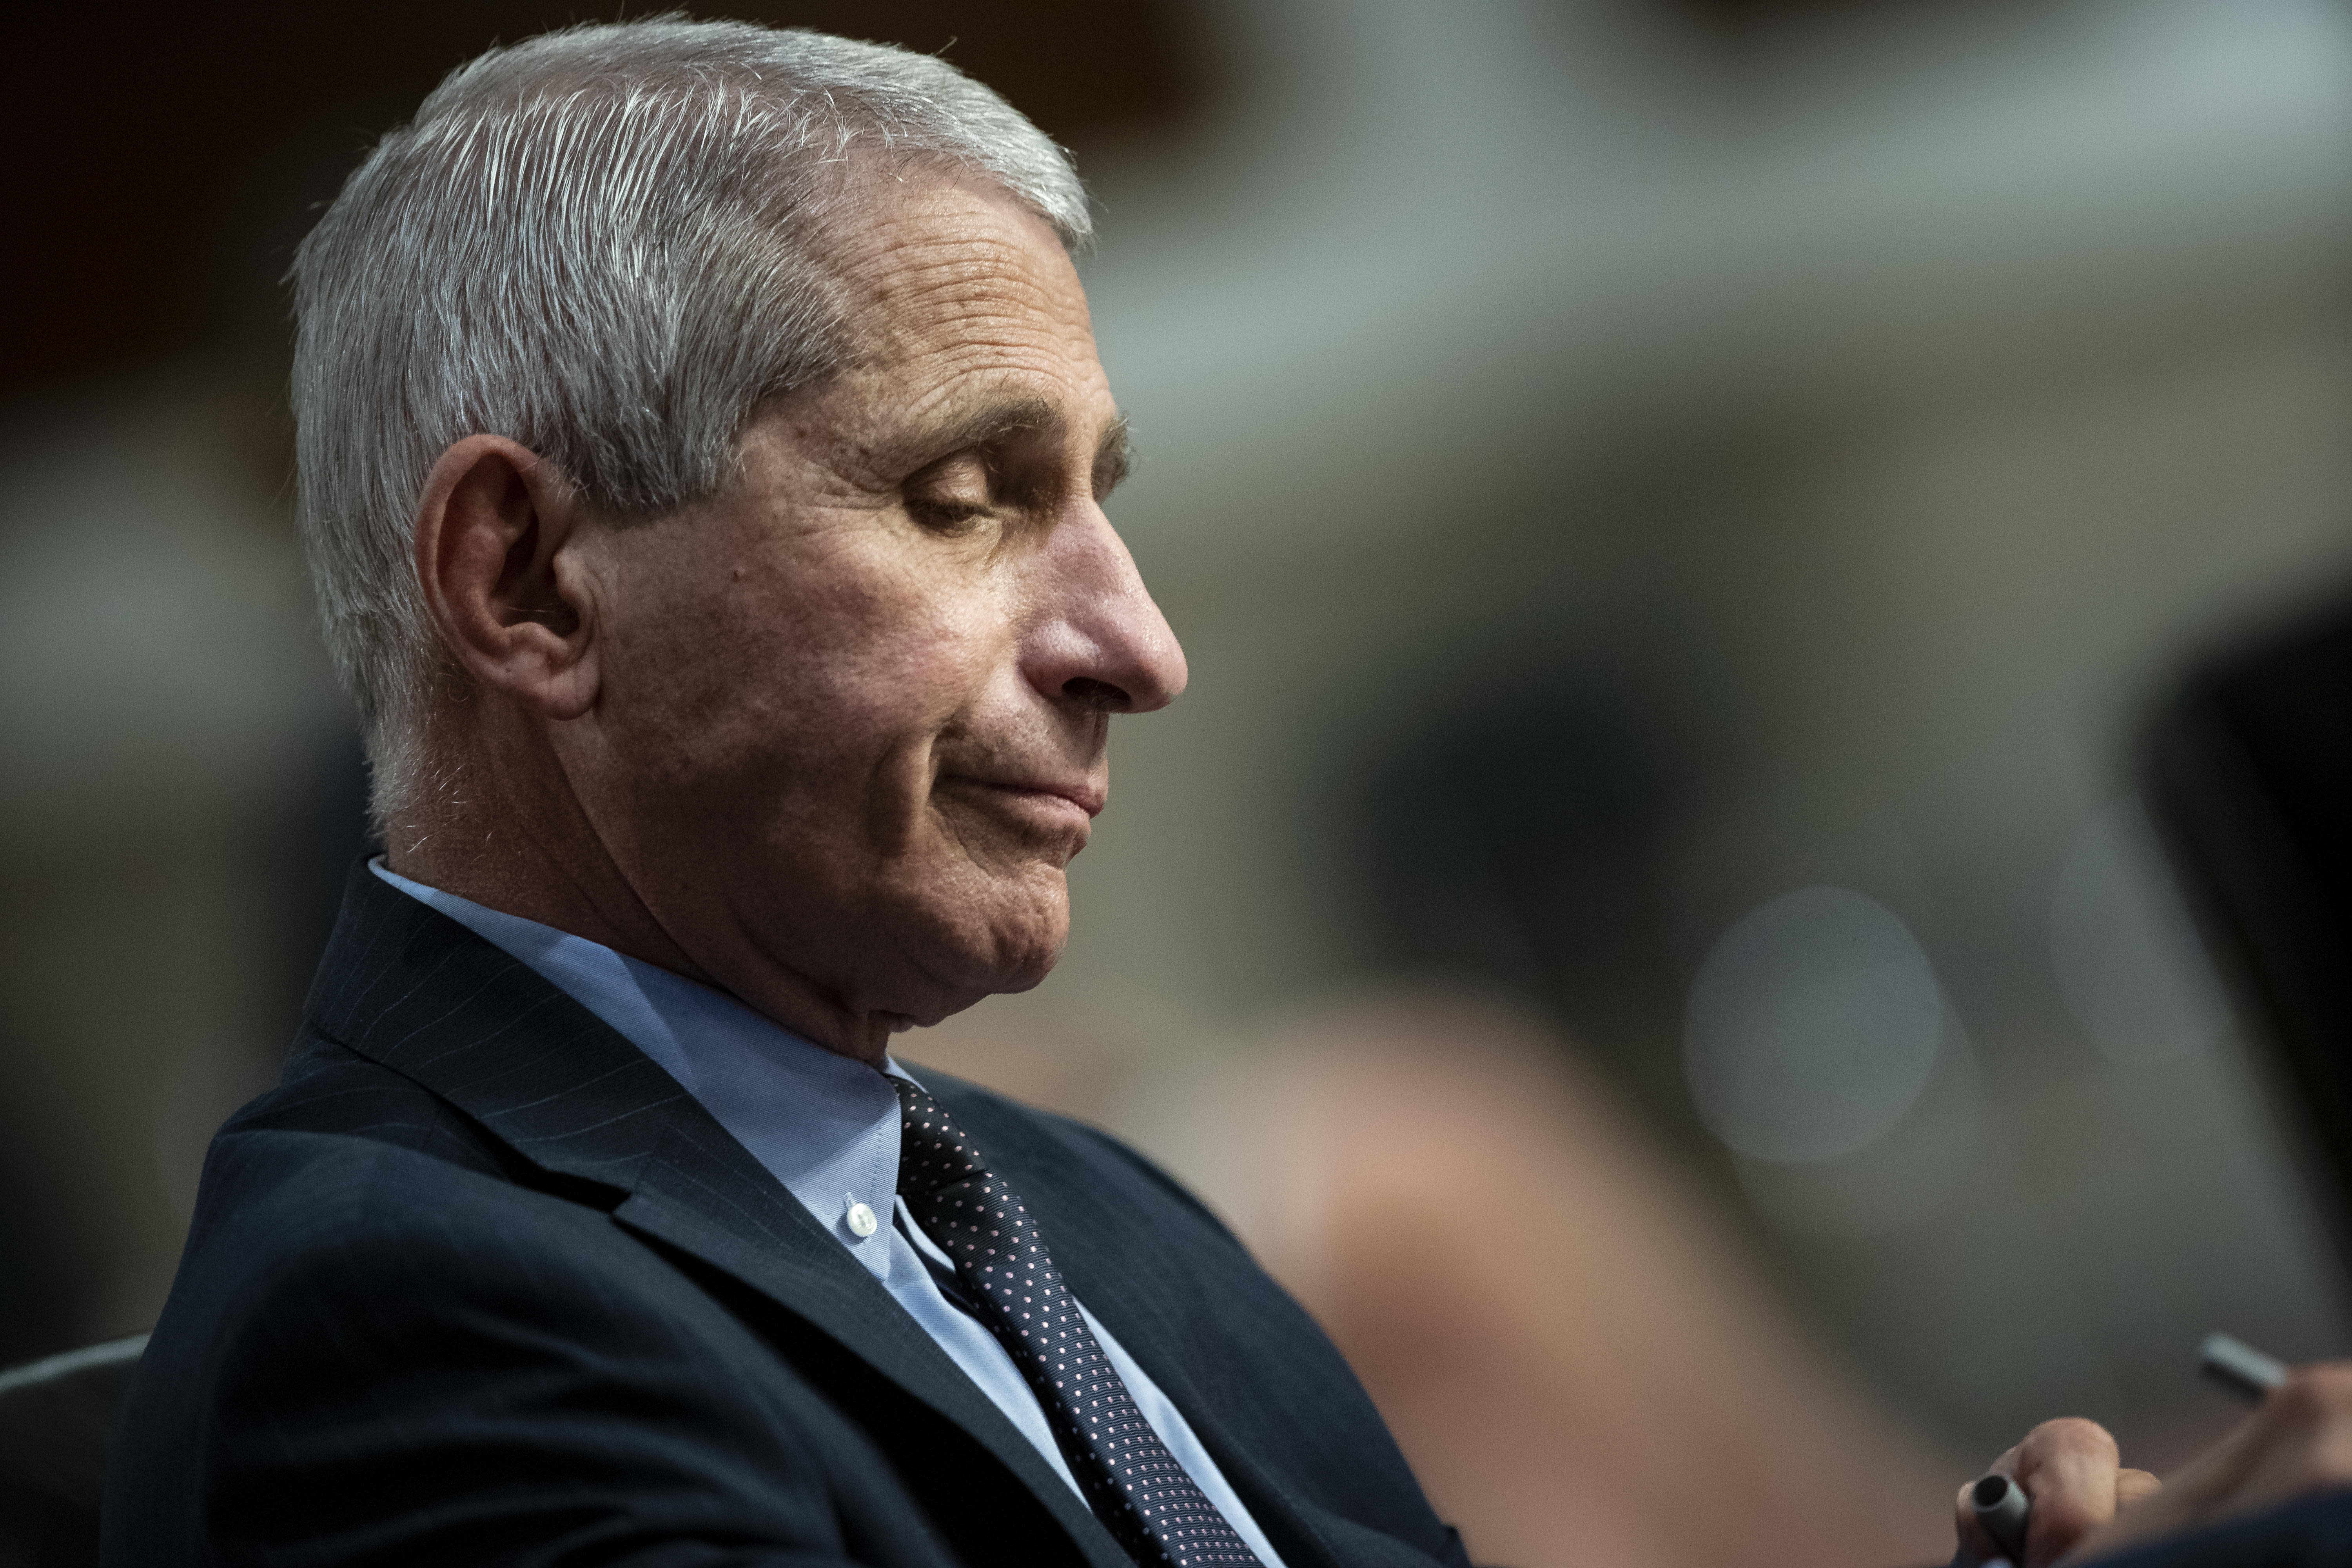 White House targets Fauci after his blunt warnings about coronavirus